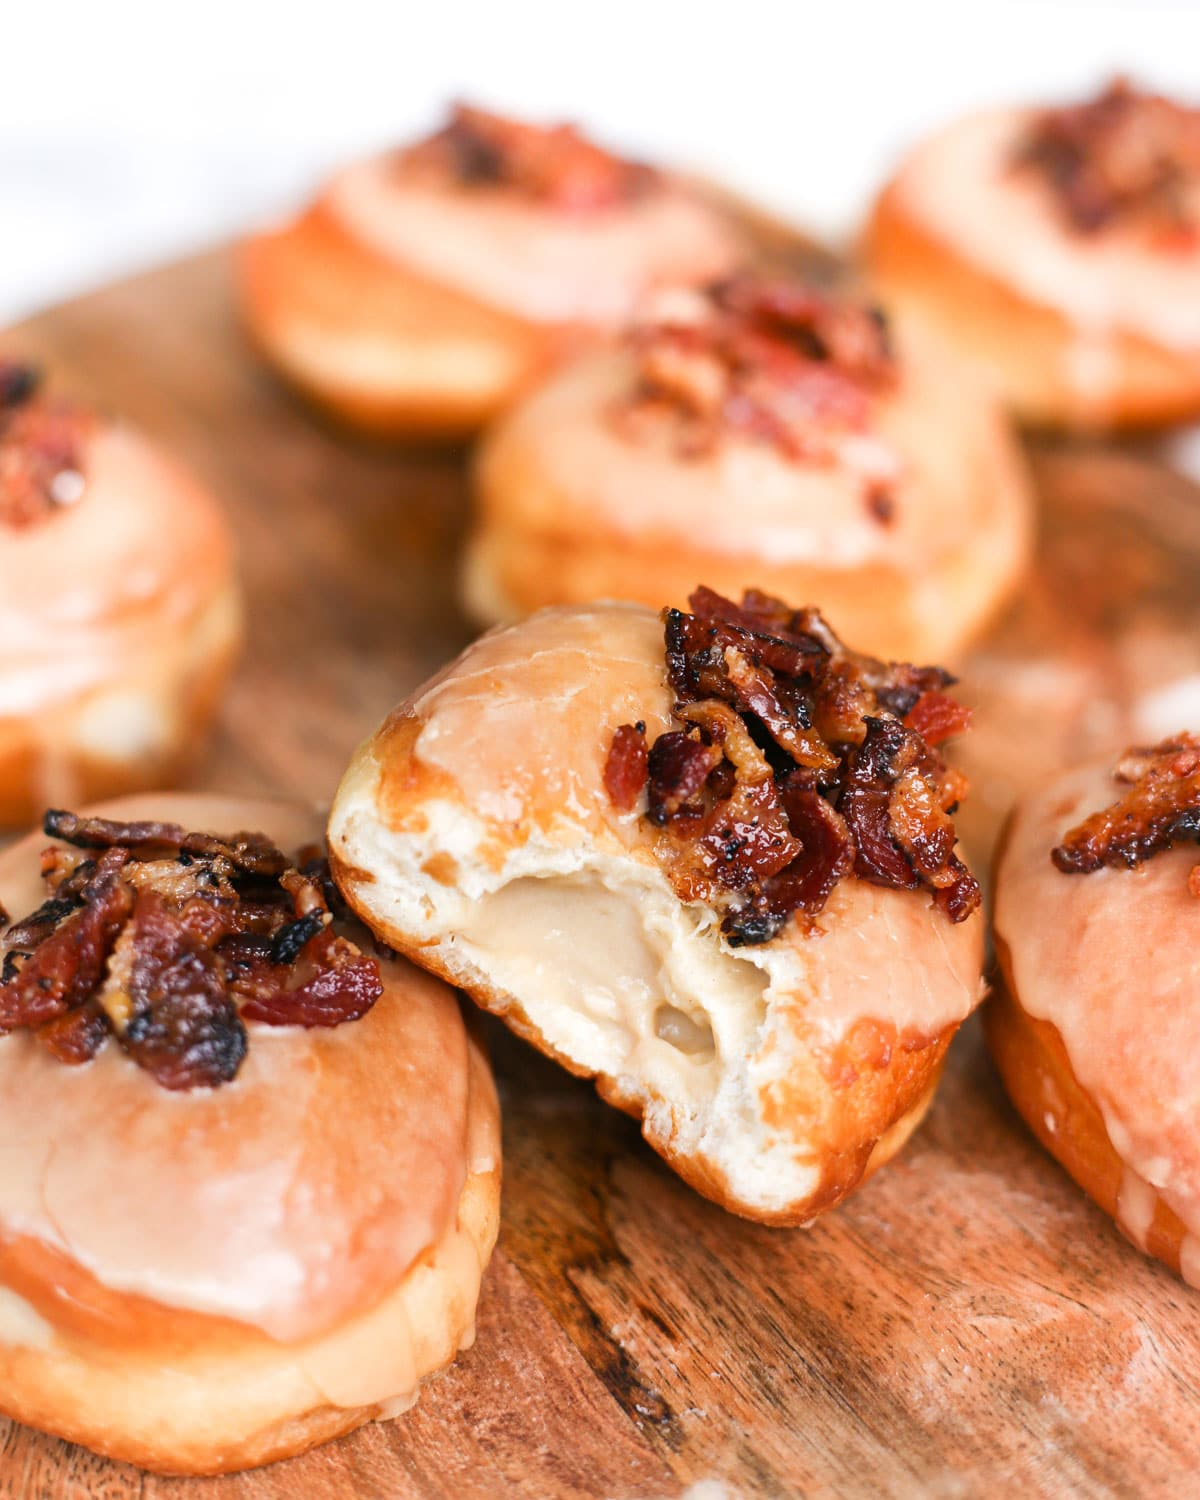 a maple bacon donut with a bite taken from it exposing the custard inside